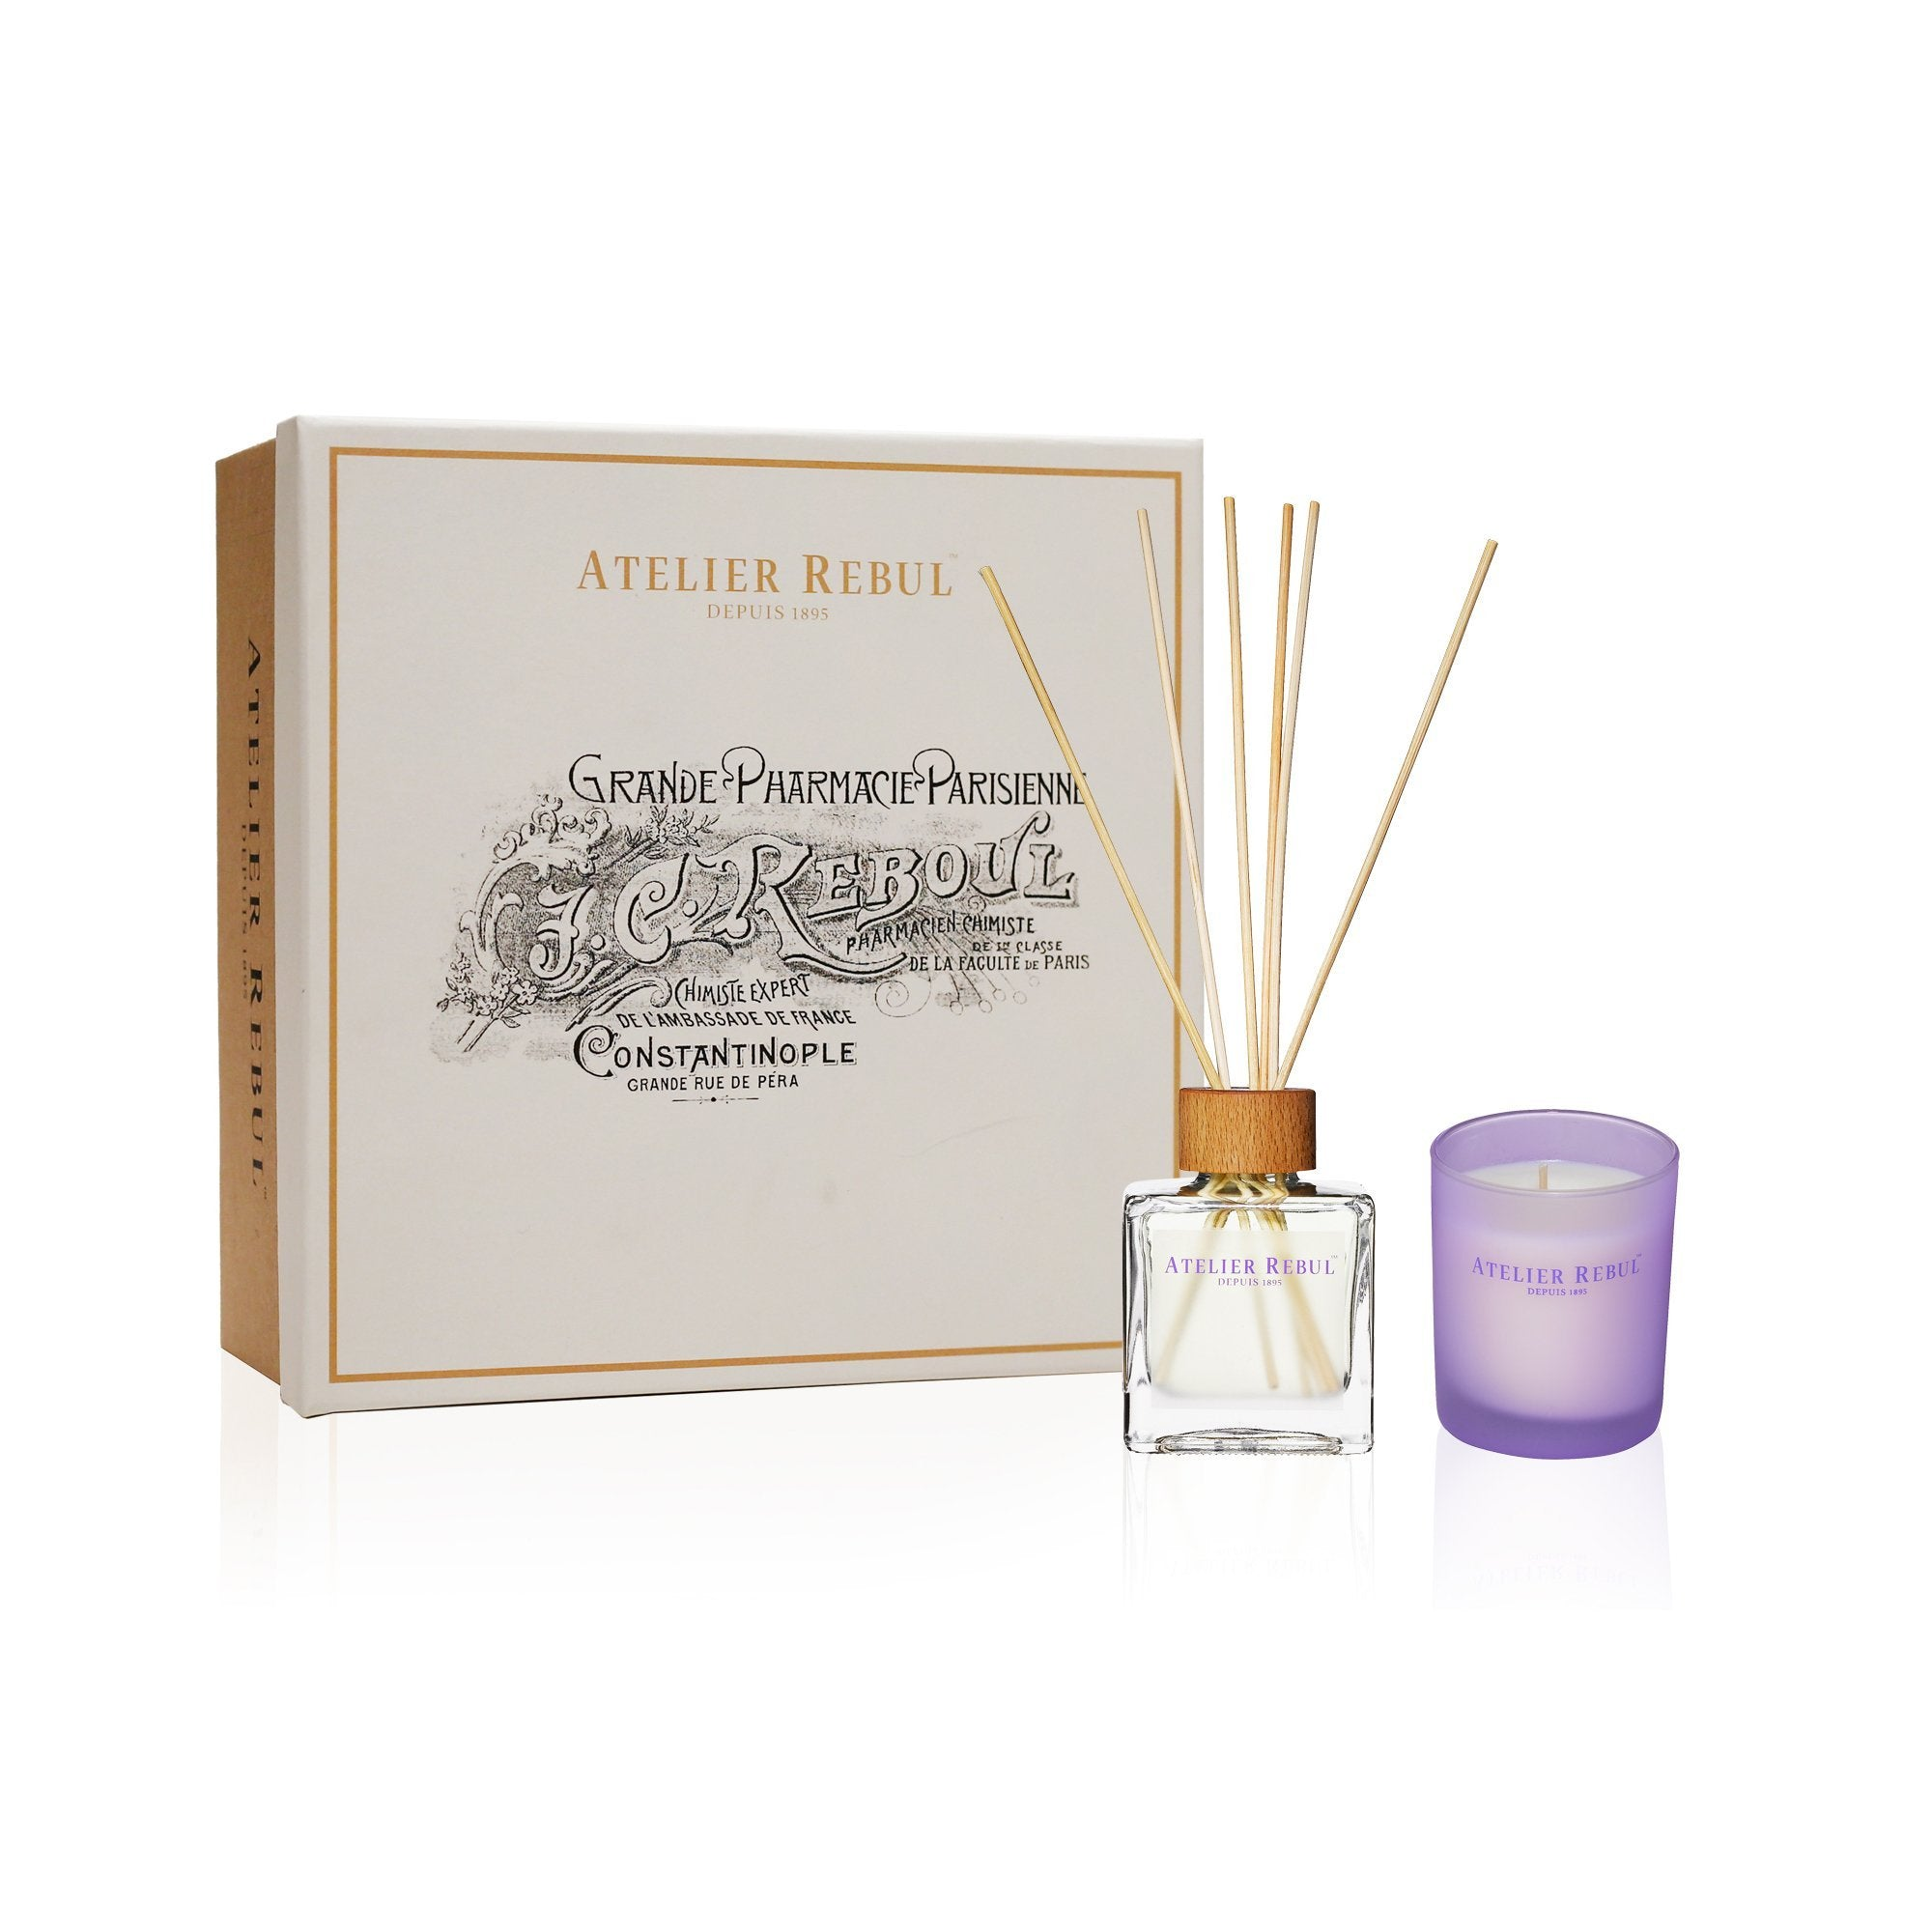 Lavender Giftset with Fragrance Sticks and Scented Candle - Atelier Rebul